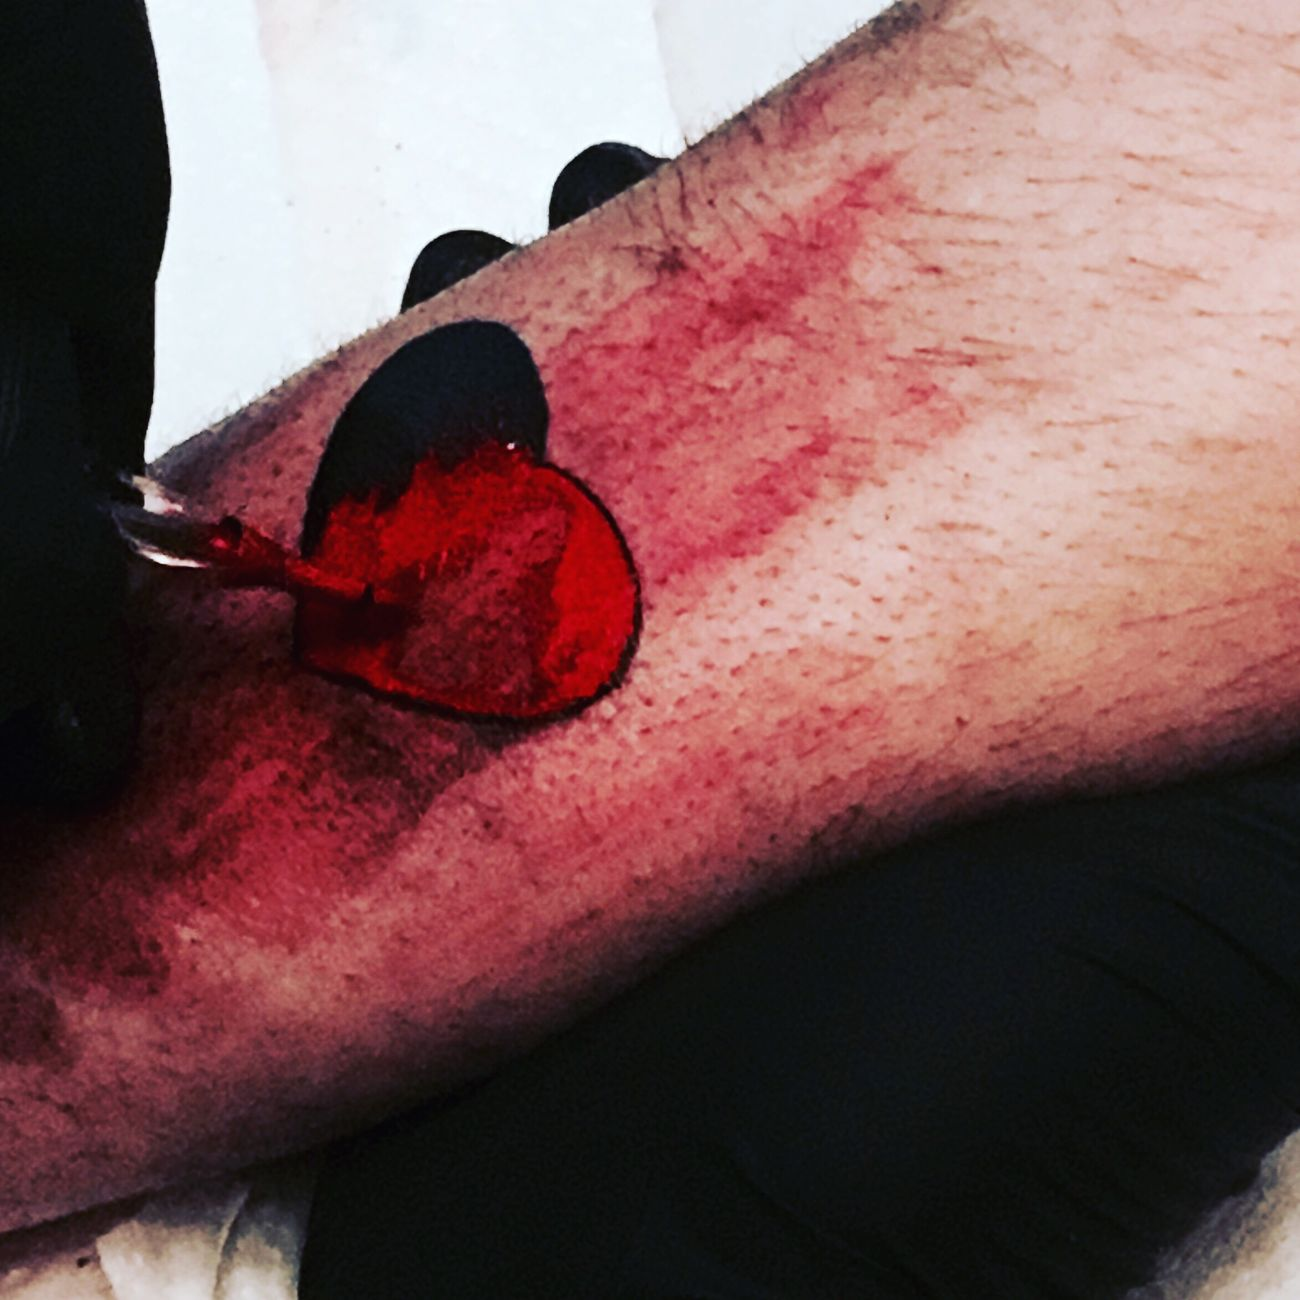 Getting ink-hearted Red Close-up Heart Tattoo Tattoos Black Arms Inked My Style Fashion Fashionable Gothic Style Emo Blood Tatuaggio Ink361 Ink Heart ❤ Heart Shape Inkedgirls Inkedlife Tattooed Live Process I Am Perry